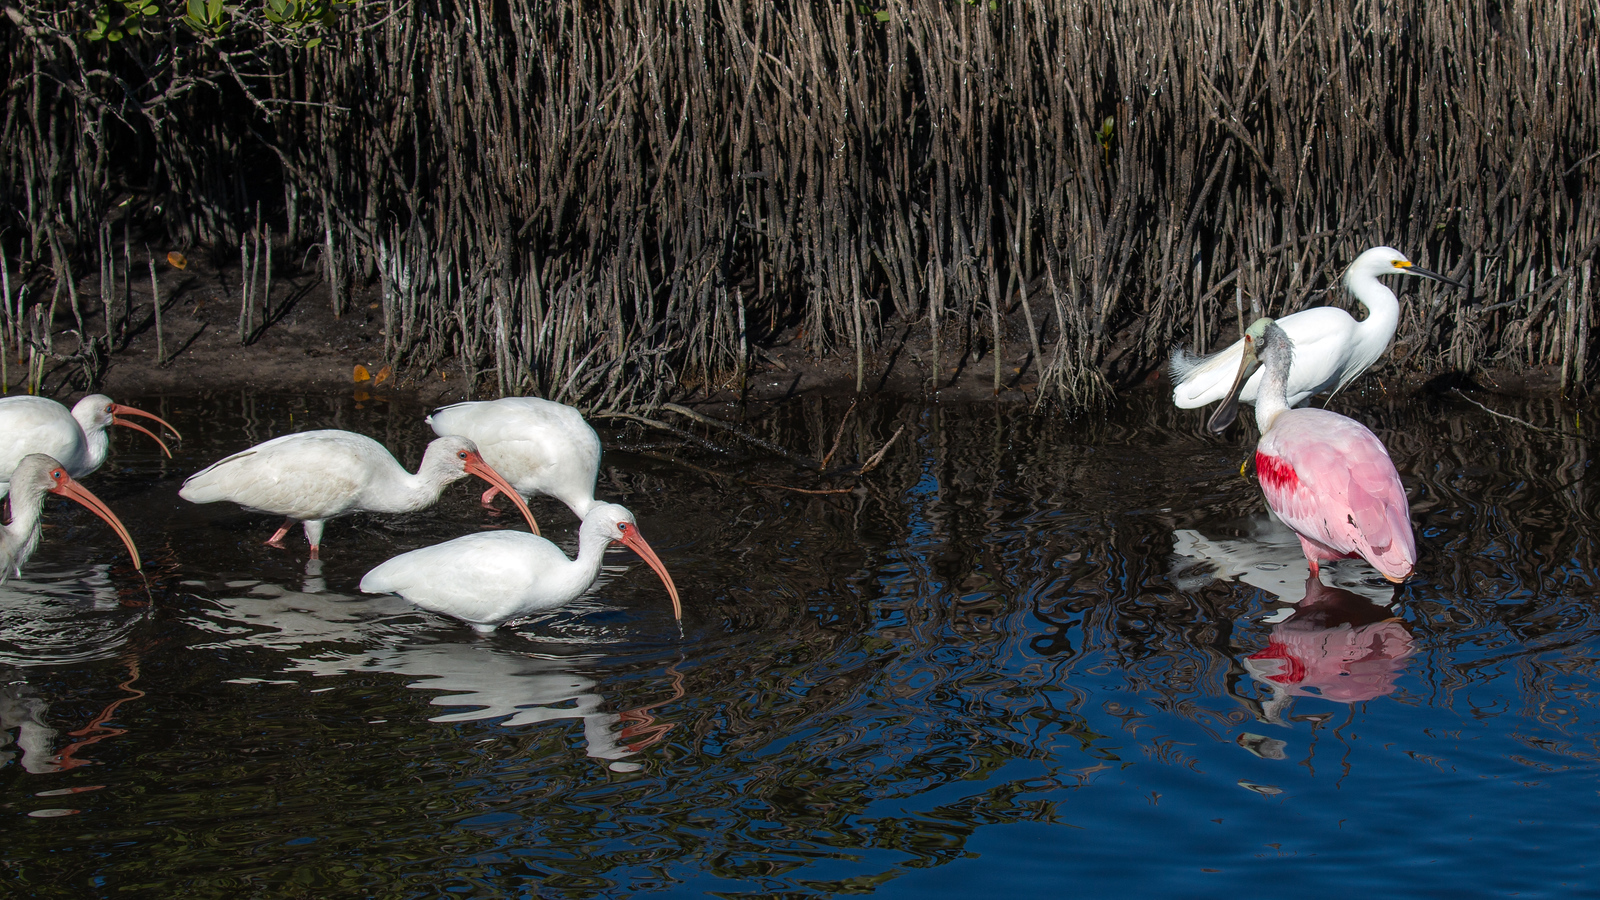 Photograph of White Ibis, Snowy Egret and Roseate Spoonbill